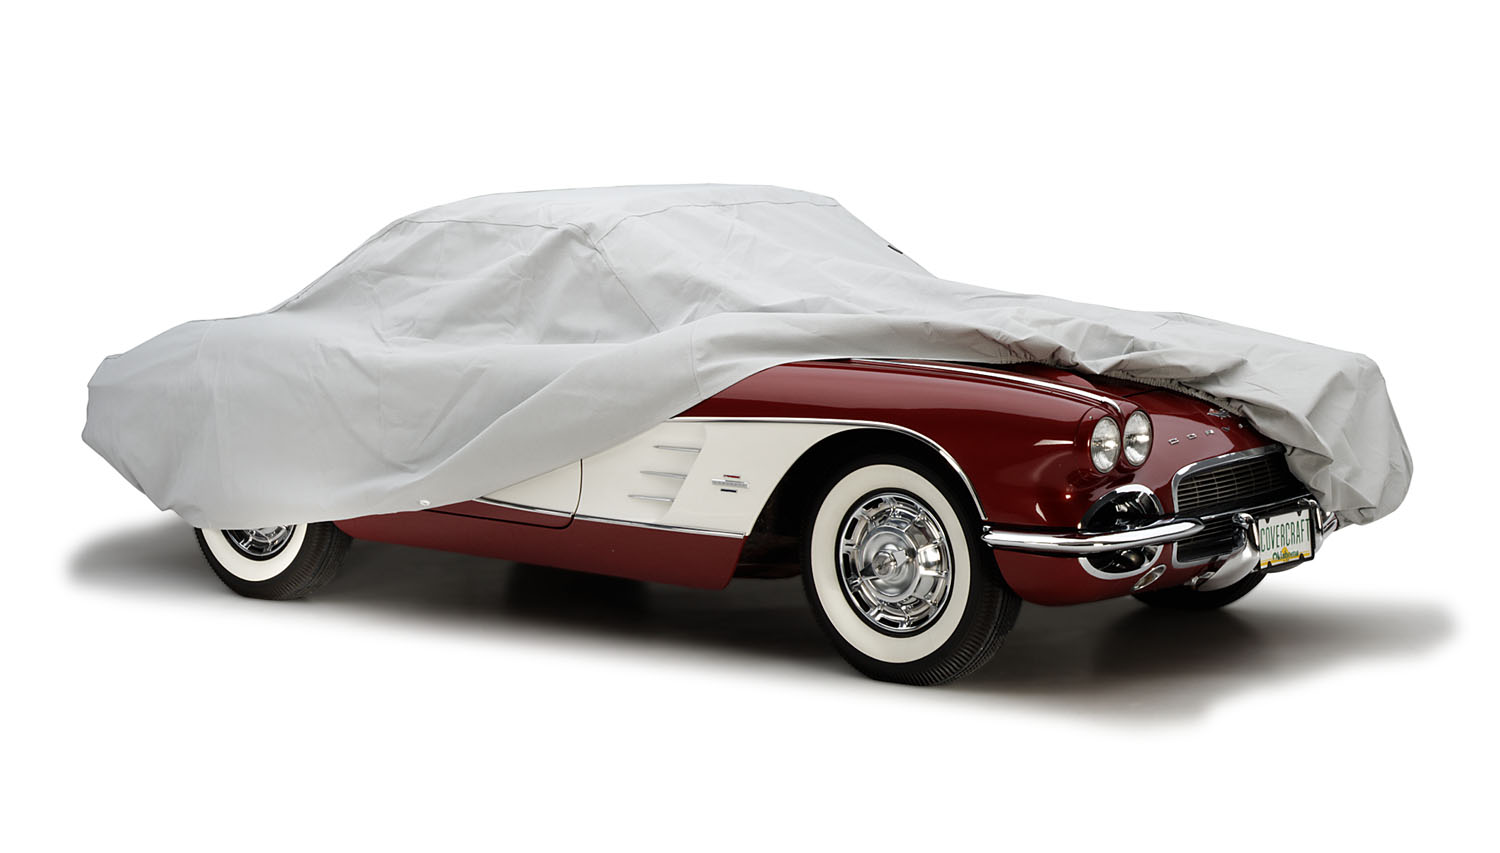 Covercraft Car Cover (C3231TK)